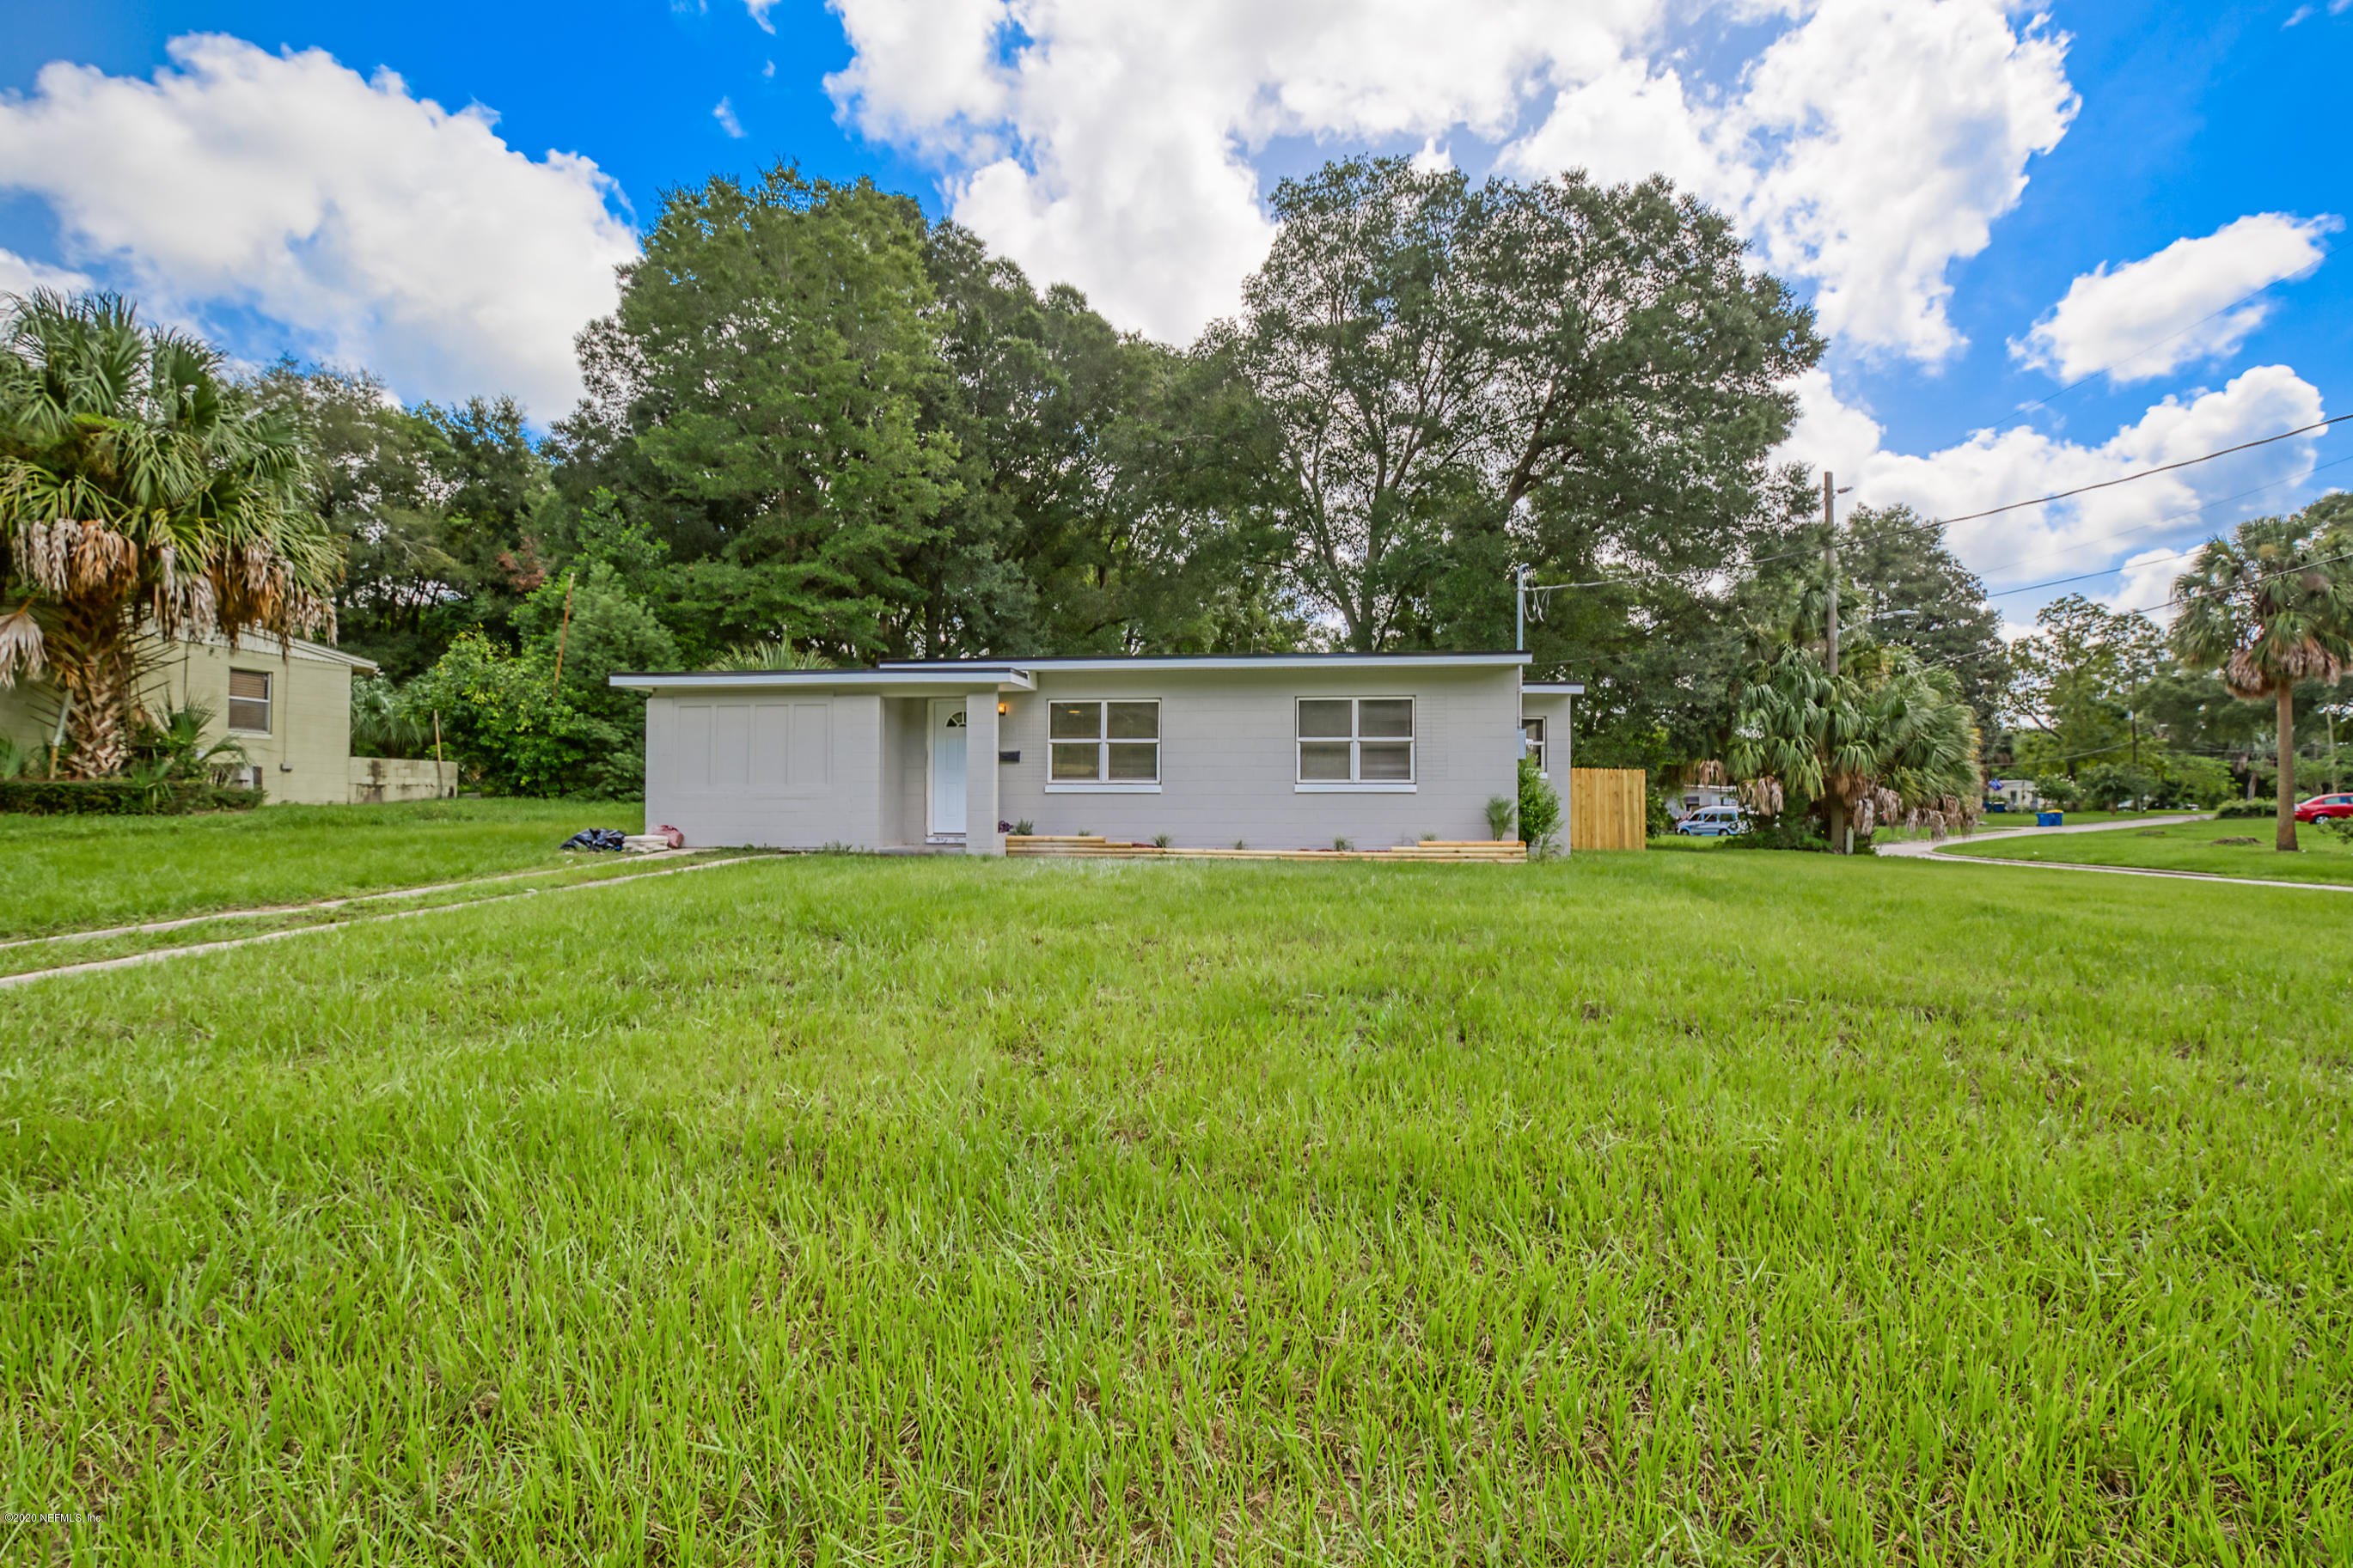 1503 KING ARTHUR, JACKSONVILLE, FLORIDA 32211, 3 Bedrooms Bedrooms, ,2 BathroomsBathrooms,Residential,For sale,KING ARTHUR,1070731